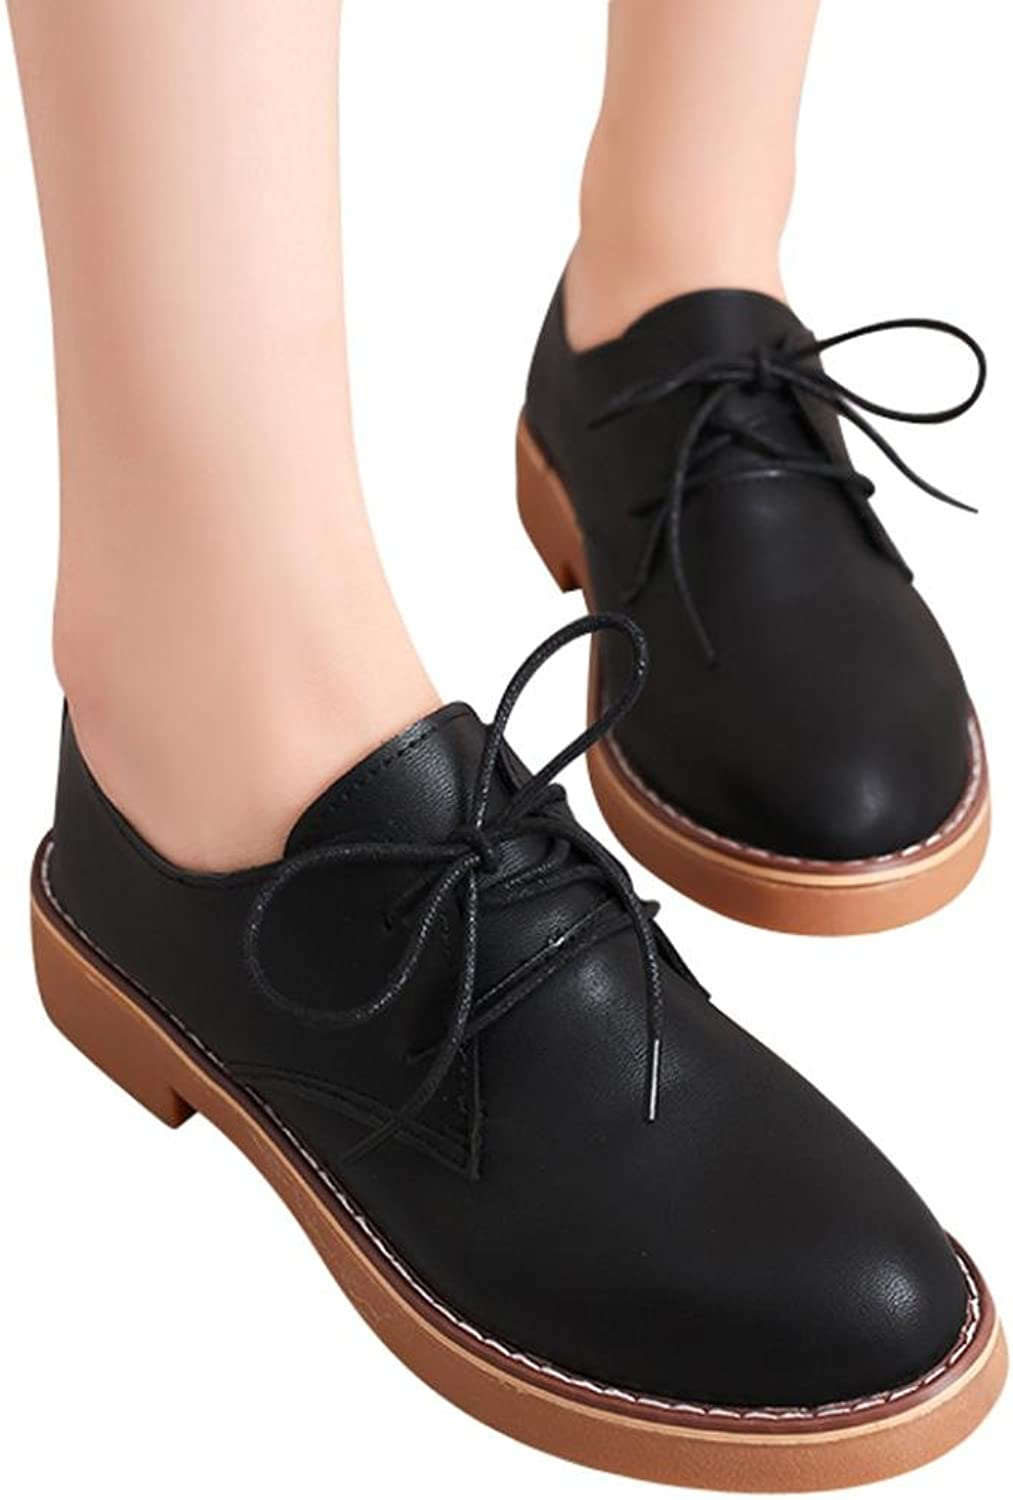 Fheaven (TM))))) Low Heel Flat shoes,Women Comfortable Lace up Leather shoes Pointed Toe Oxford shoes Black